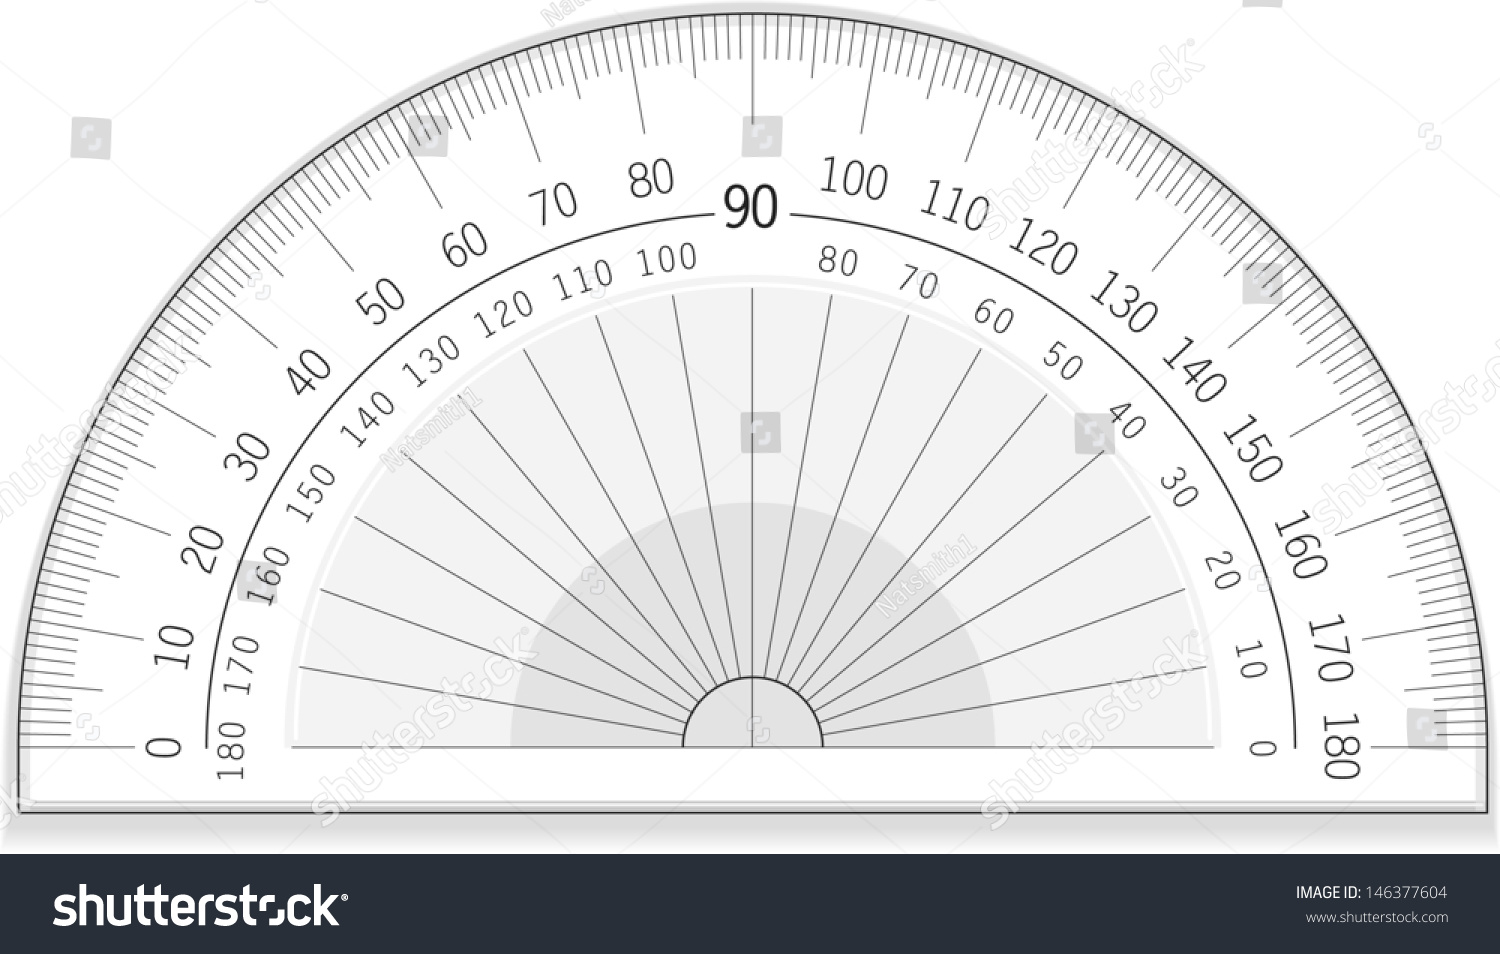 Worksheet Protractor Image Grass Fedjp Worksheet Study Site